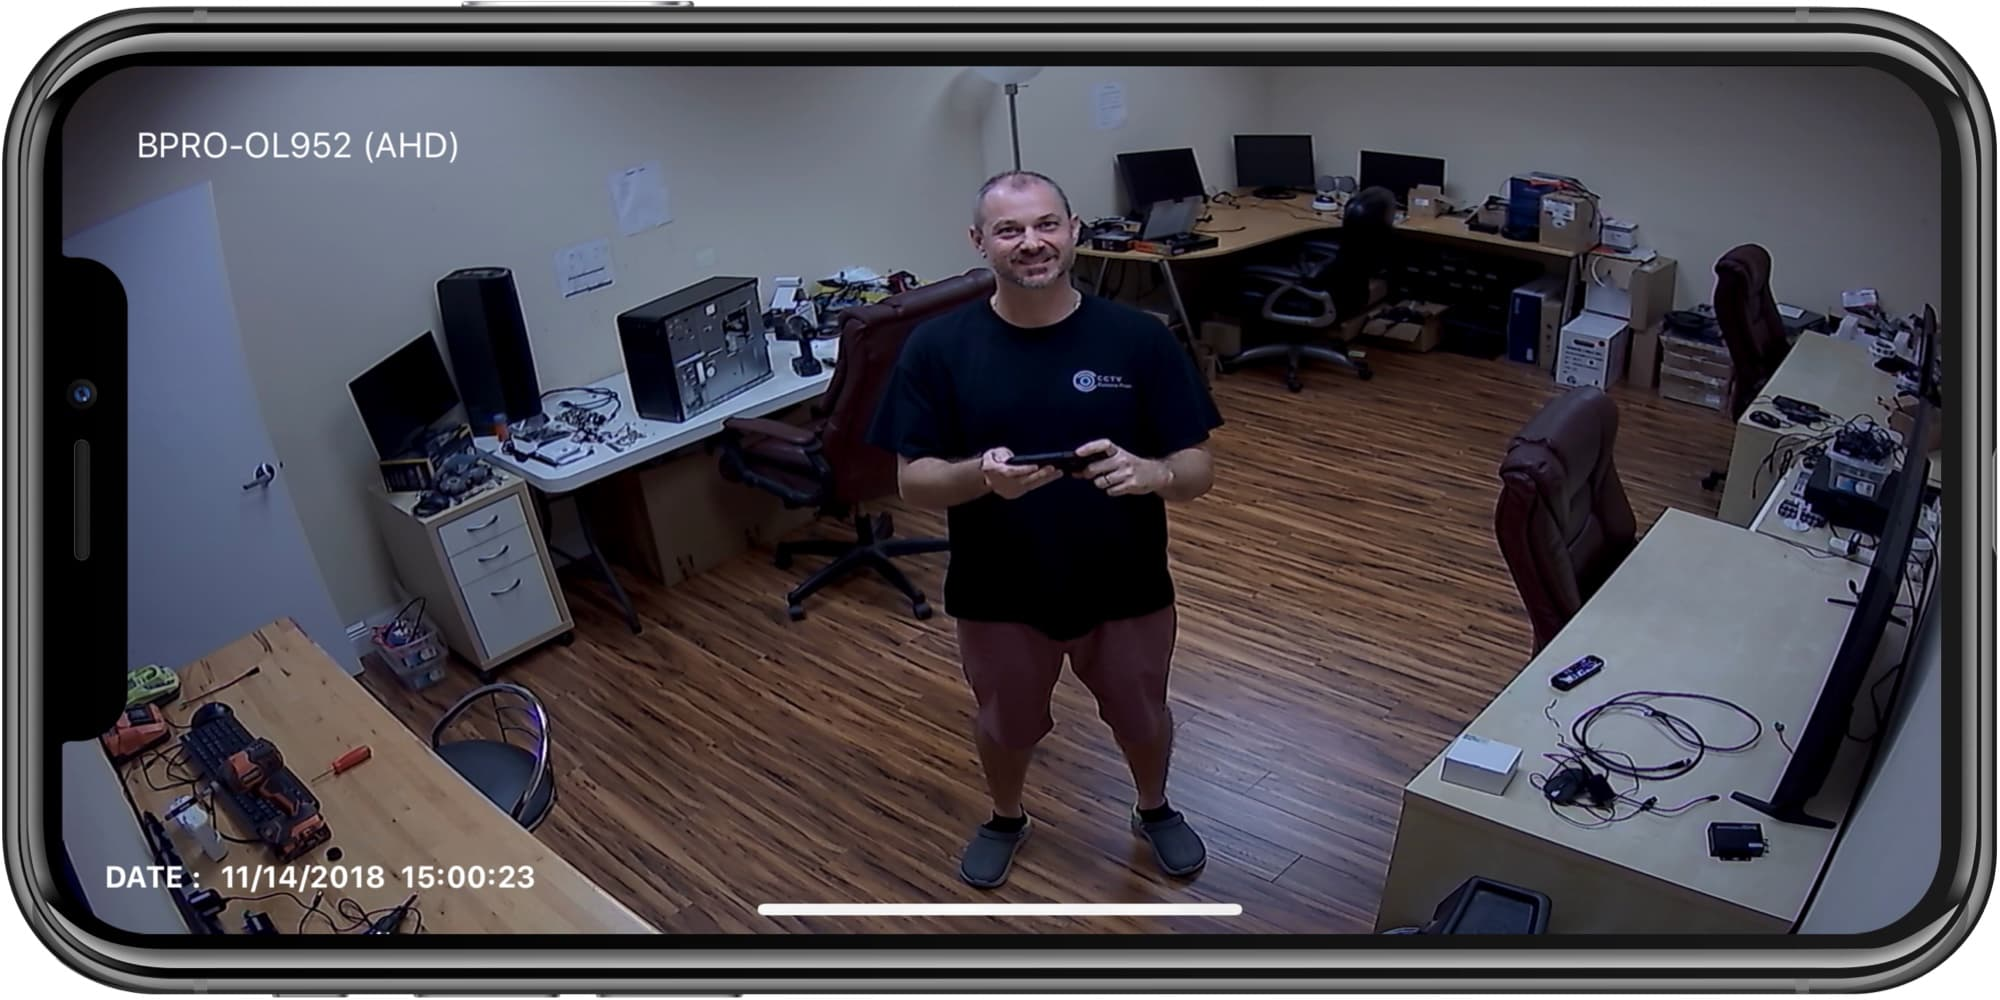 HD security camera iphone app remote view